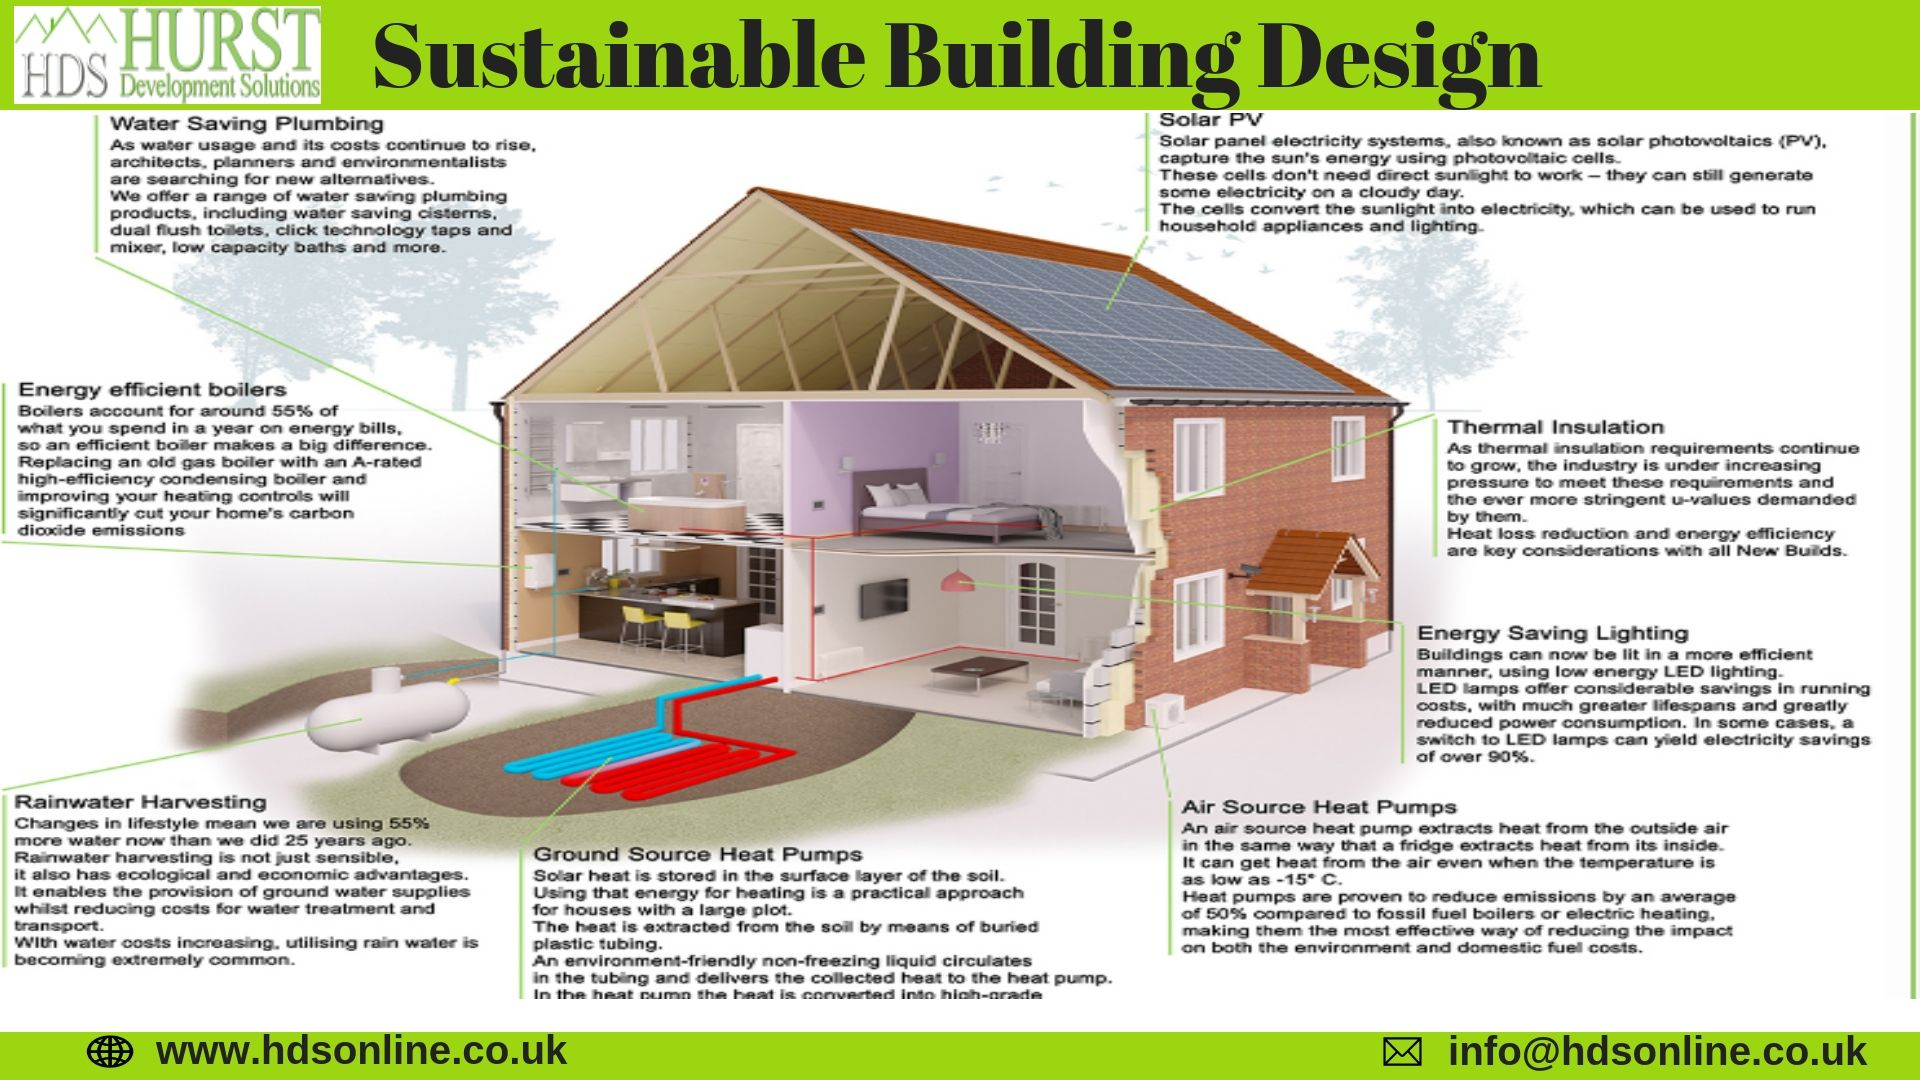 Sustainable Building Design Green Building Design Sustainable Building Design Building Design